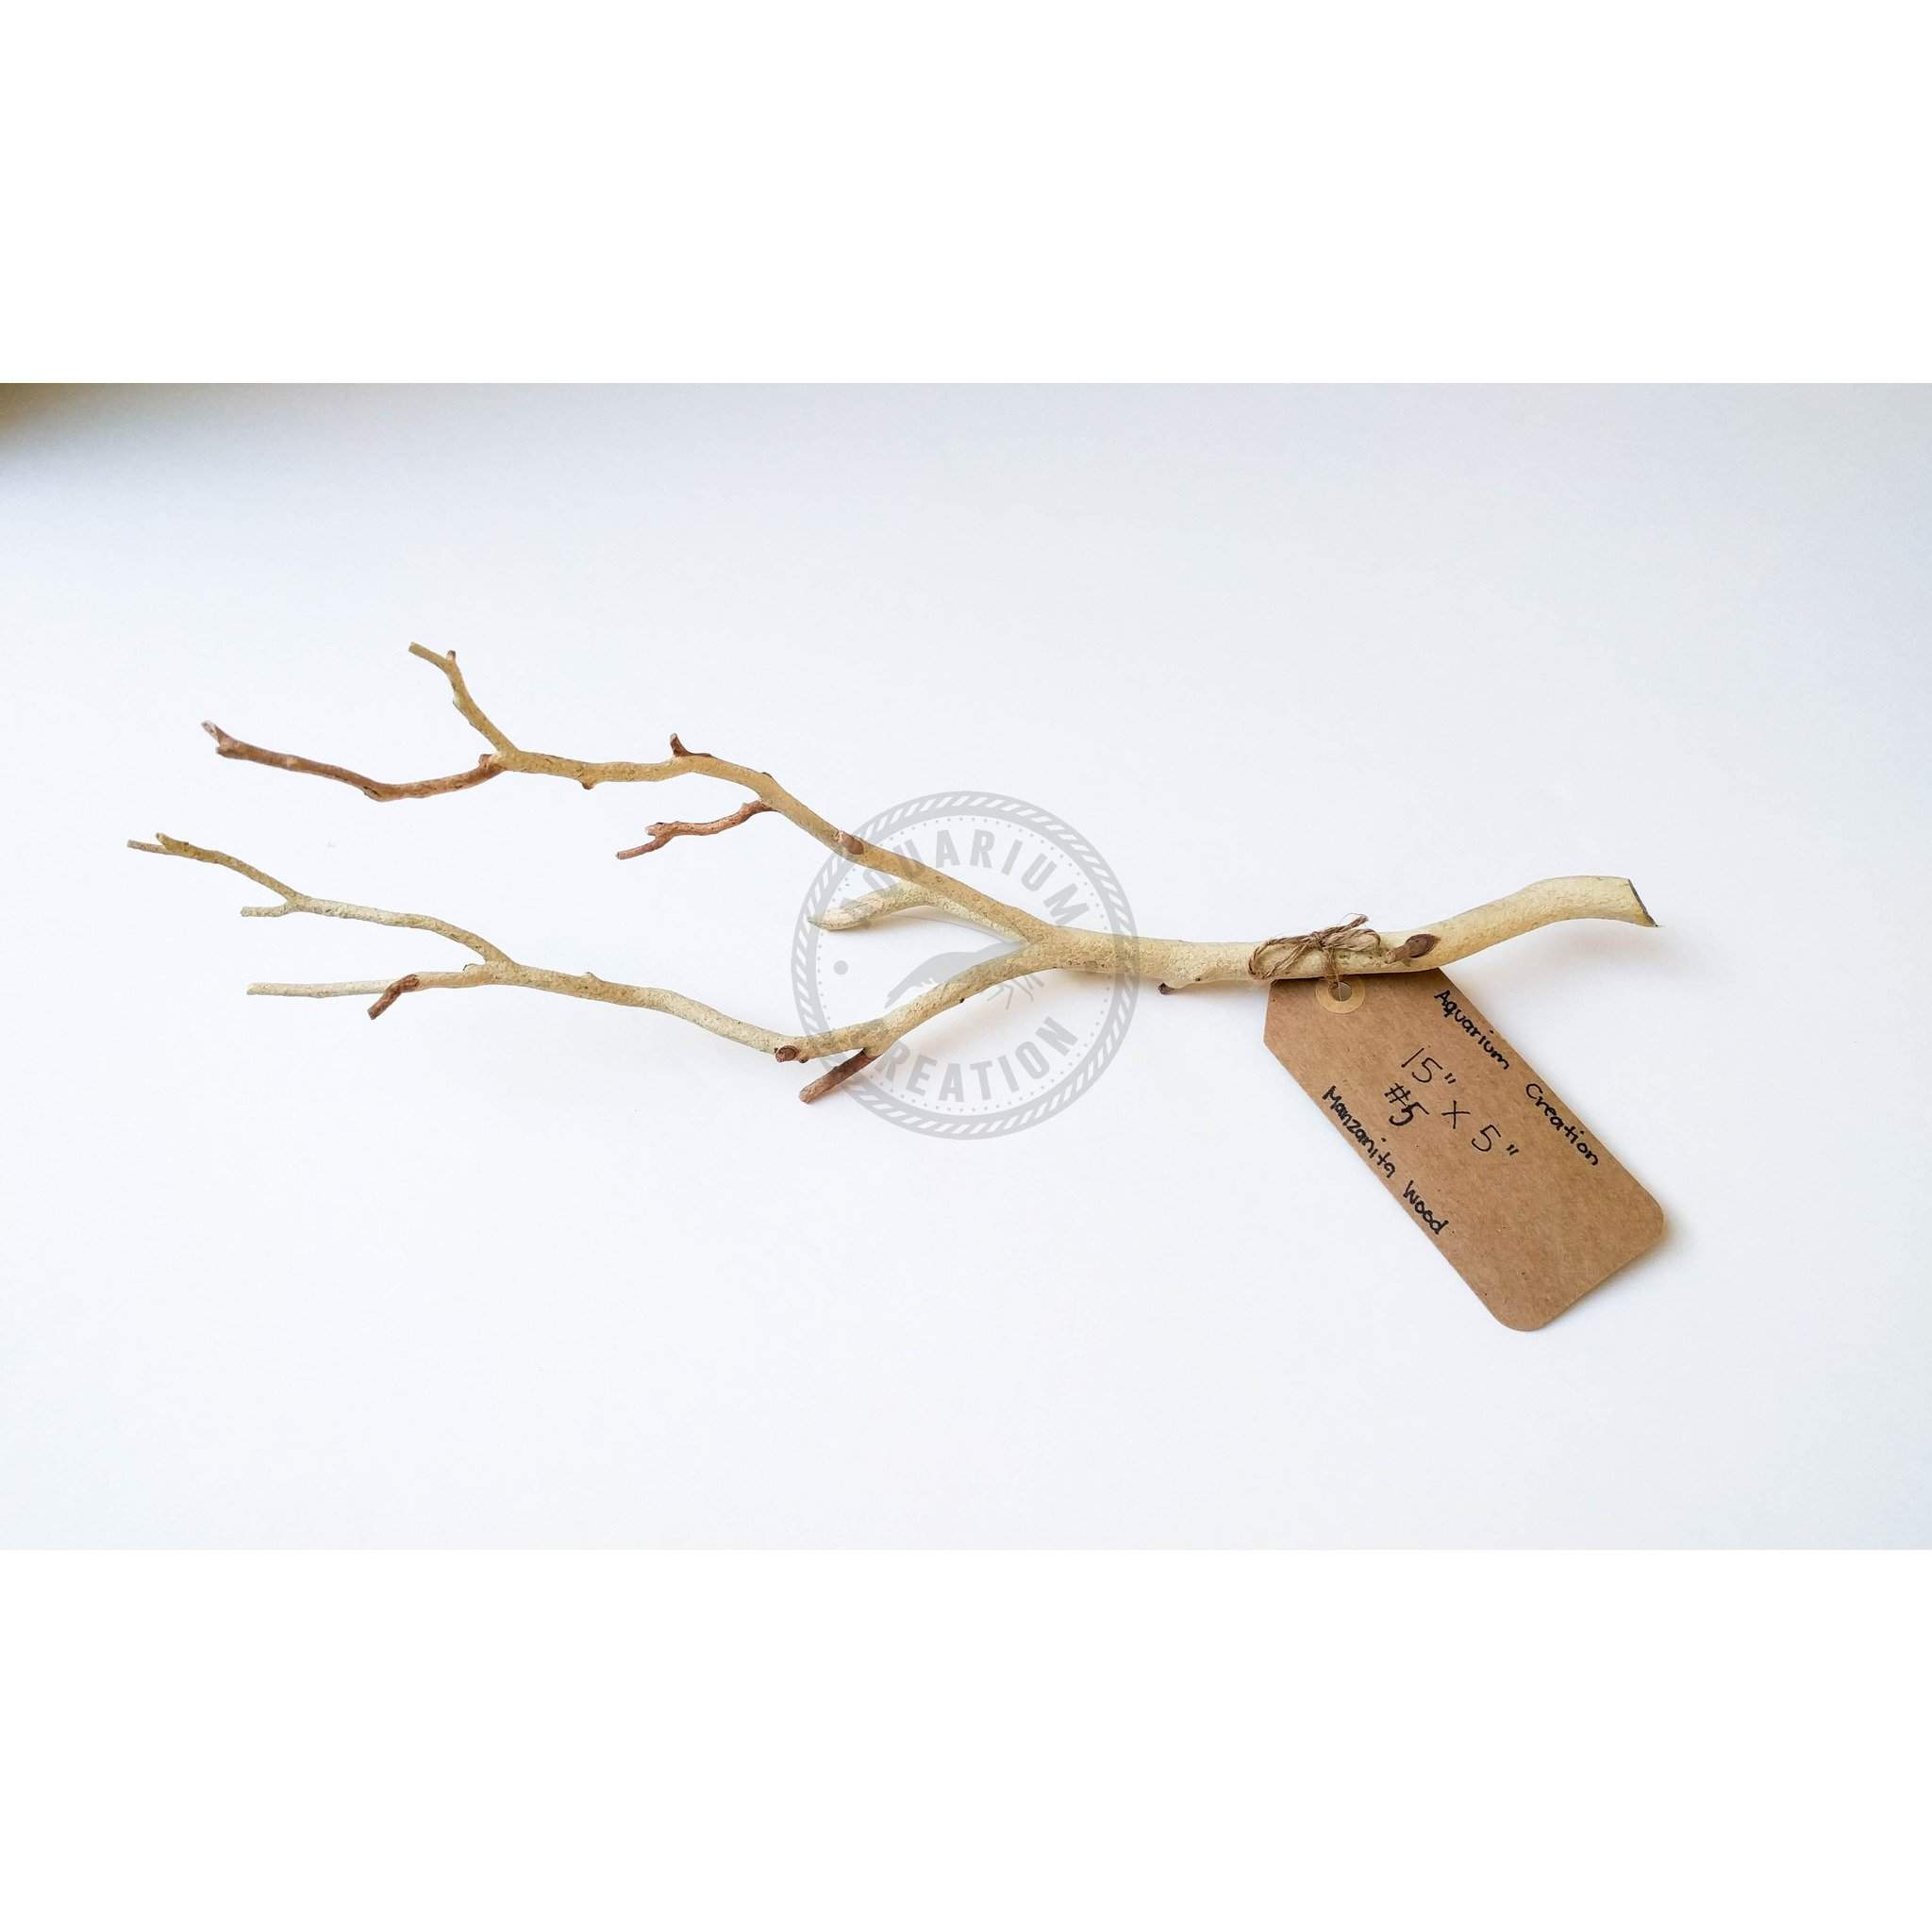 Nano Series Manzanita Driftwood - Piece #5 - Woods, Leaves, Natural Products - Aquarium Creation